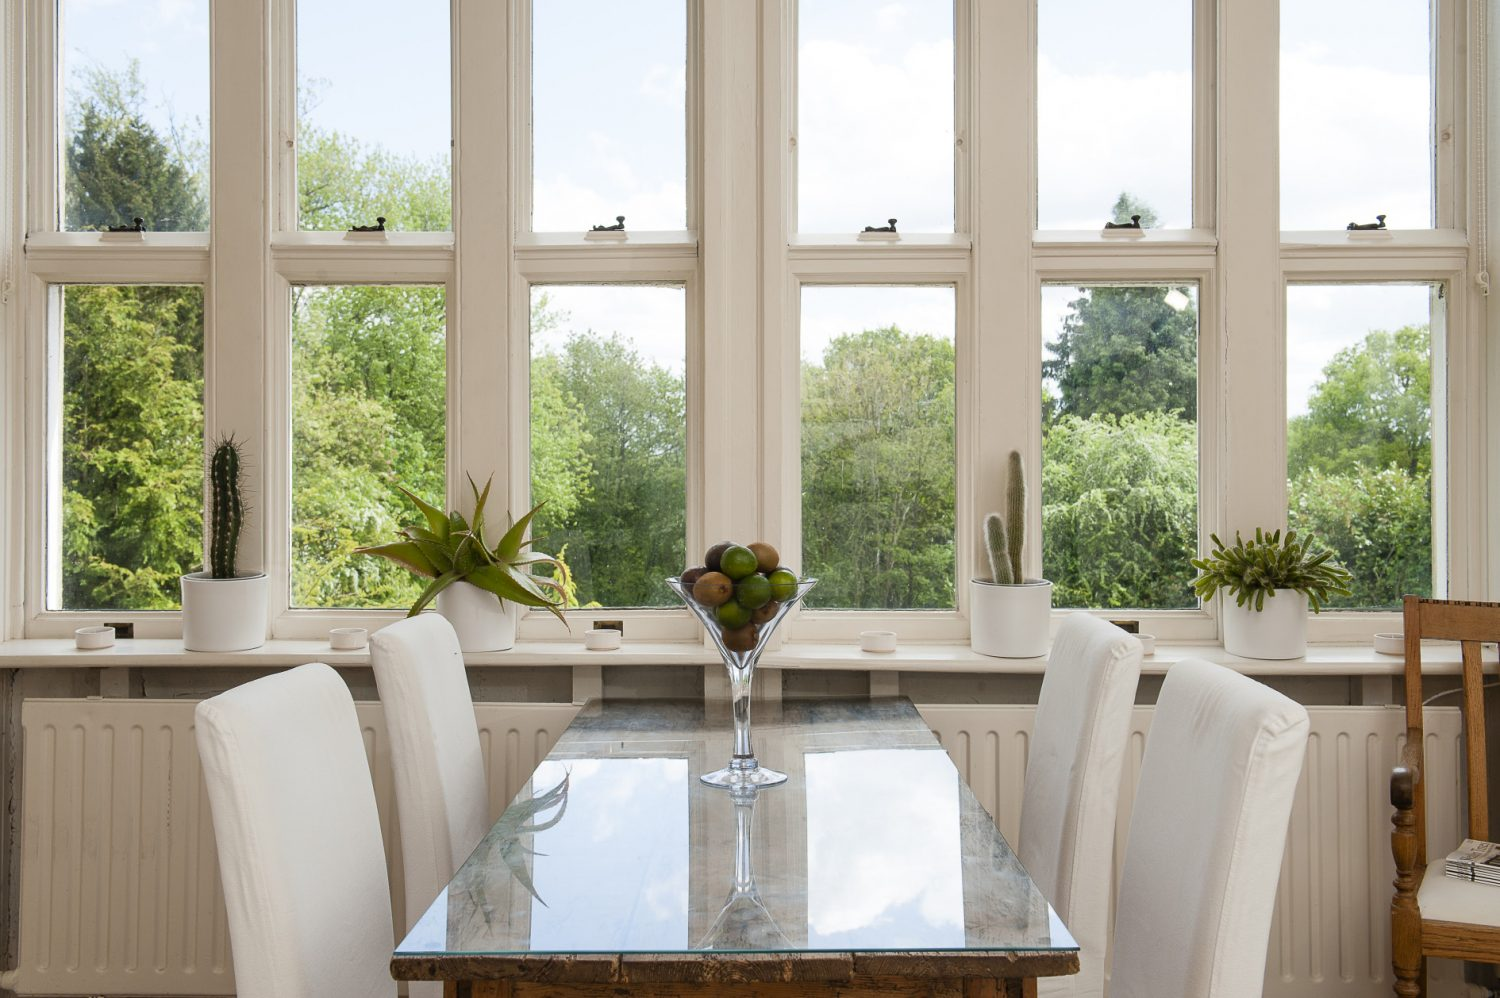 The original master bedroom is now the kitchen/breakfast room. The simple pine table has been elegantly upgraded by giving it a glass top and surrounding it with chic white Ikea chairs